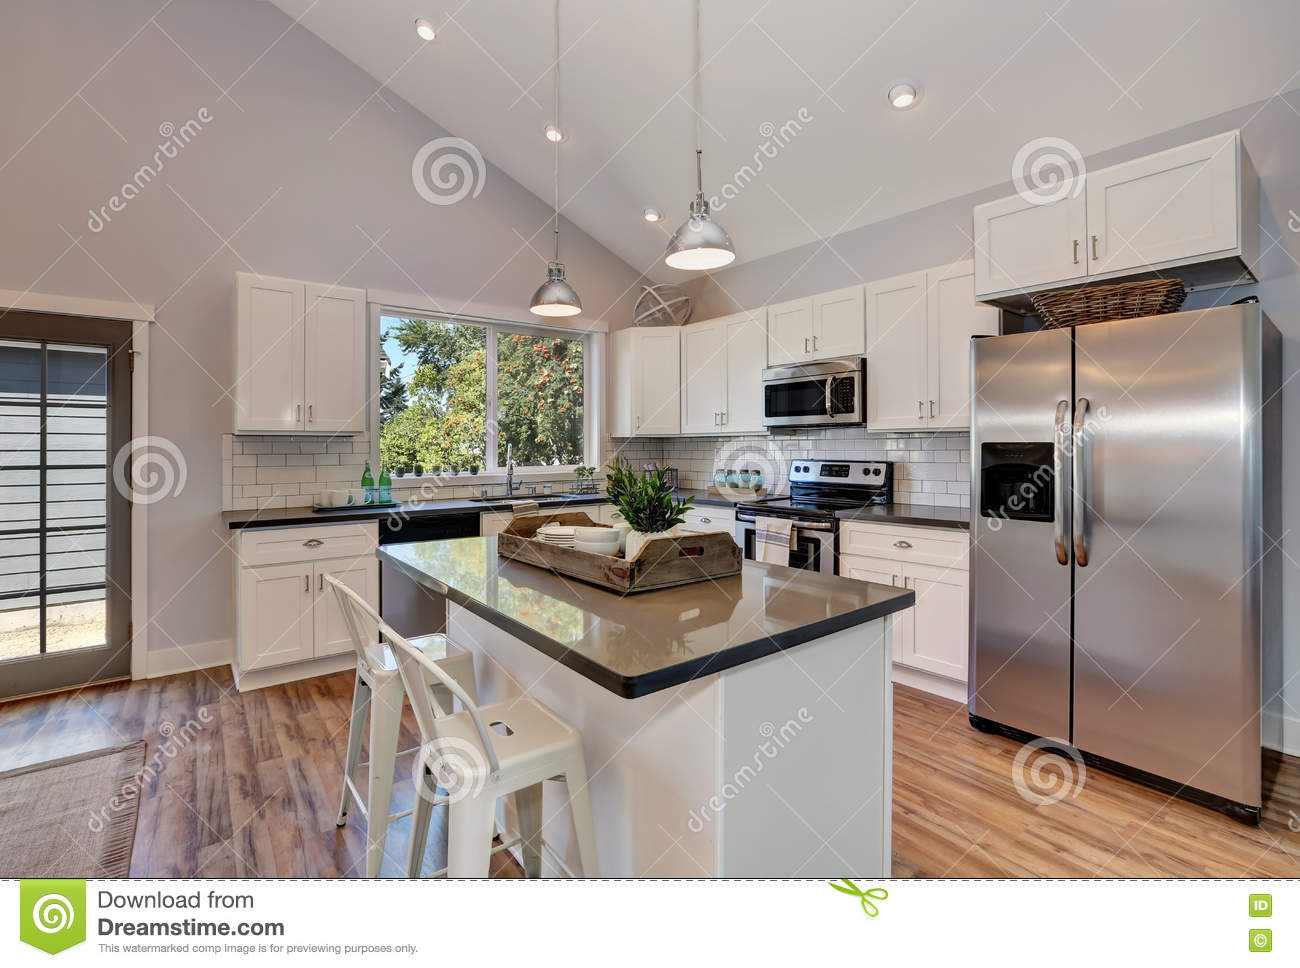 Pendant Lighting For High Ceilings Interior Of Kitchen Room With High Vaulted Ceiling Stock